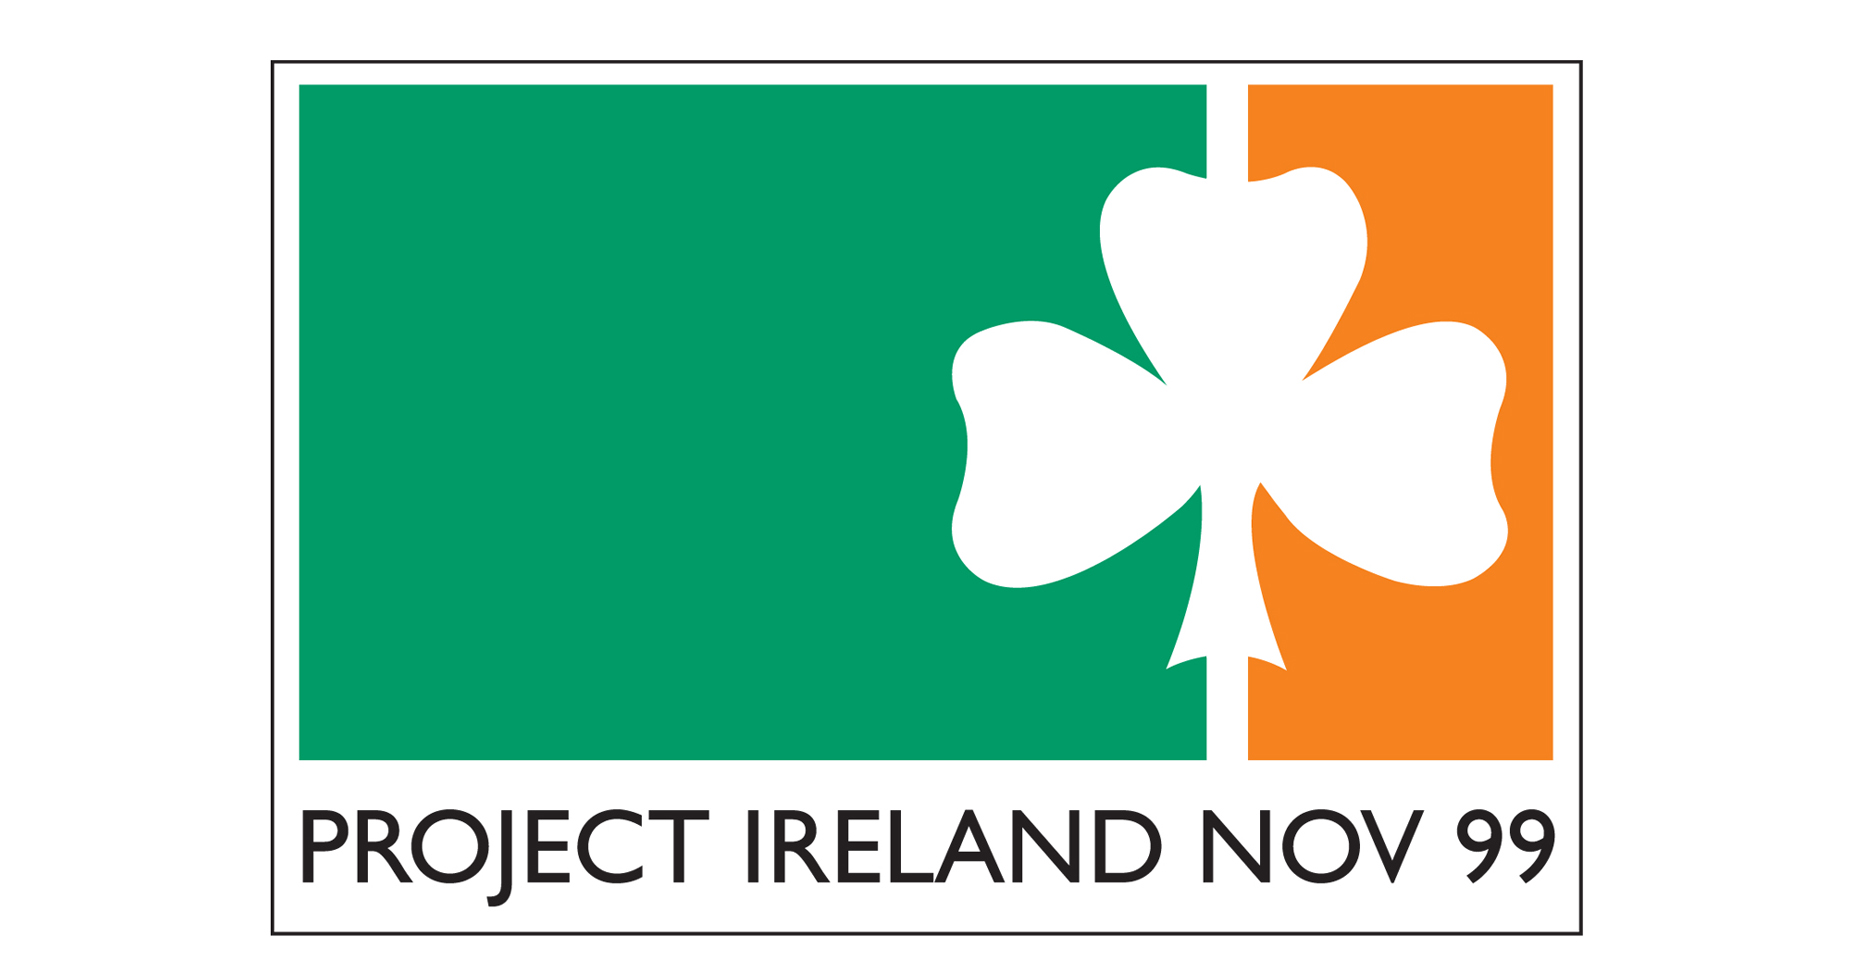 image of the Irish flag in green white and orange but with the shape of a shamrock forming the white element